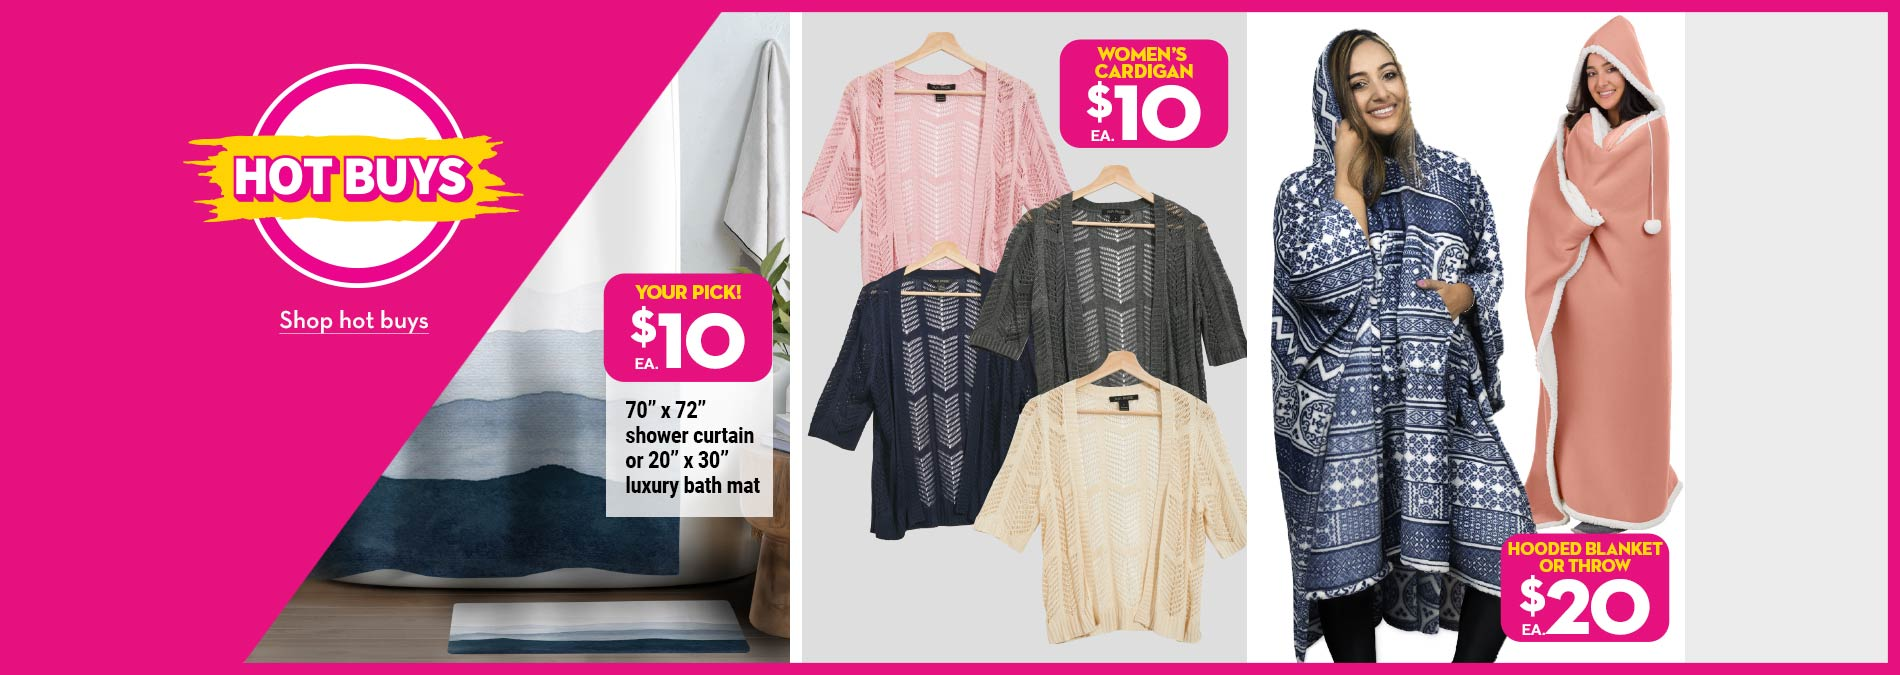 "Hot Buys. $10 70"" x 72"" shower curtain or 20"" x 30"" luxury bath mat. $10 Women's cardigan. $20 Hooded blanket or throw."